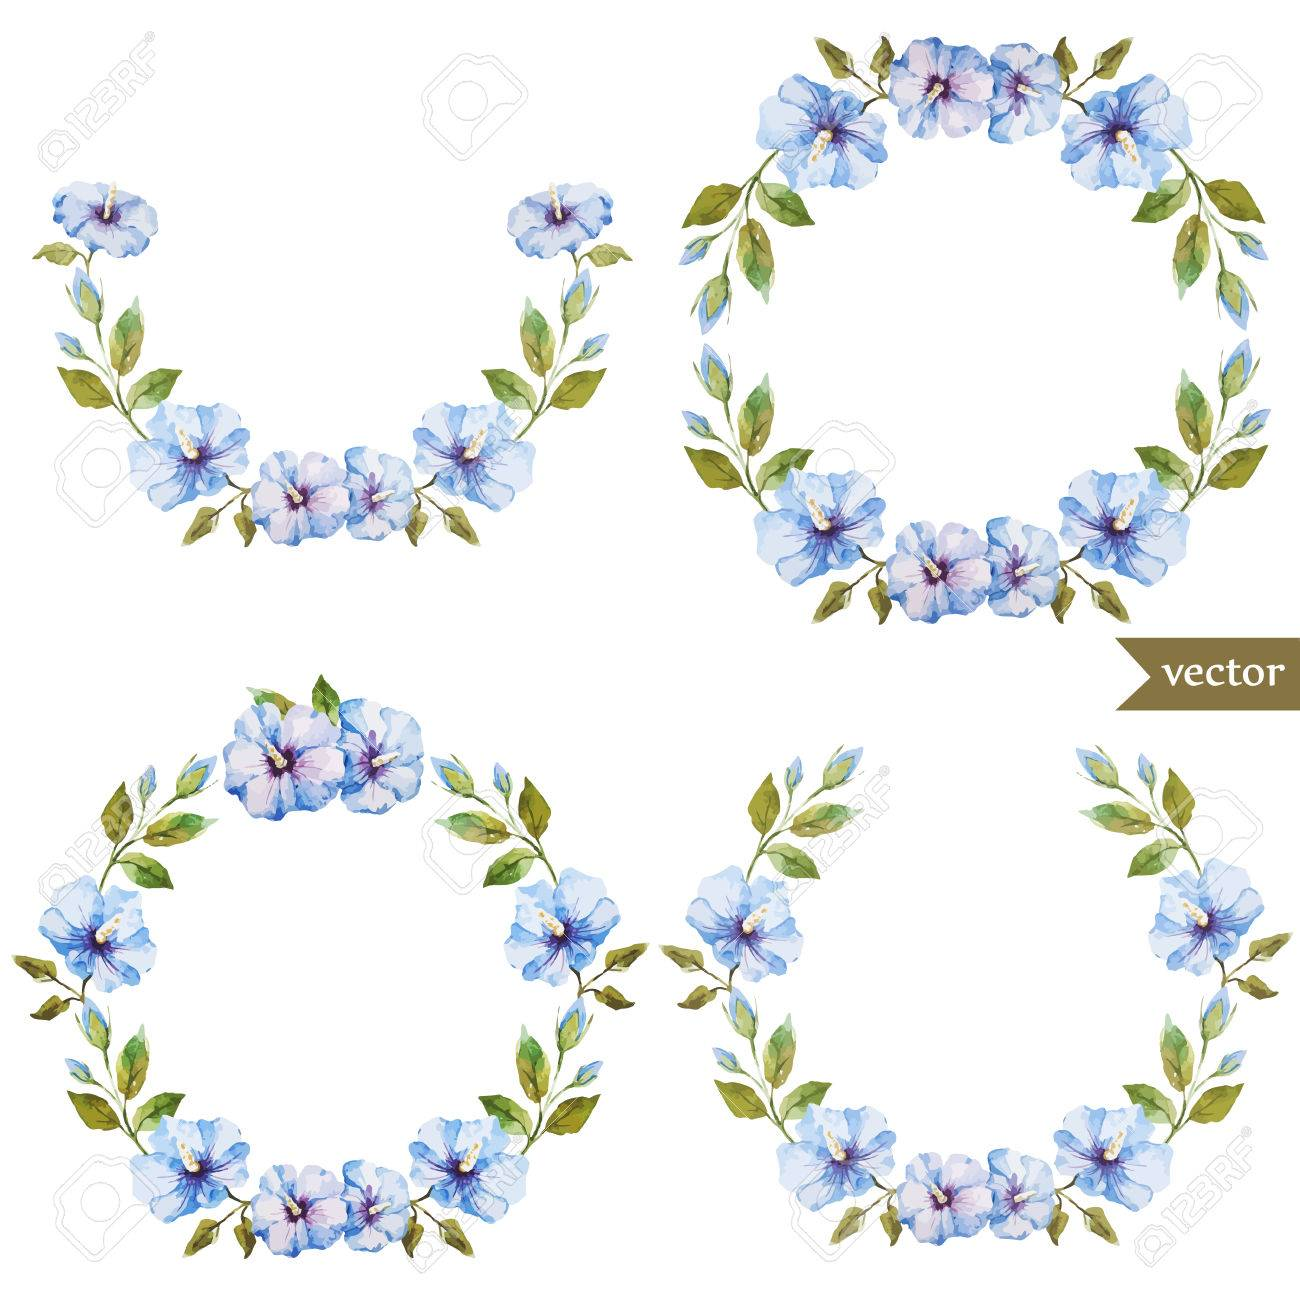 Beautiful blue flowers in wreath on white fon royalty free cliparts beautiful blue flowers in wreath on white fon stock vector 36354364 izmirmasajfo